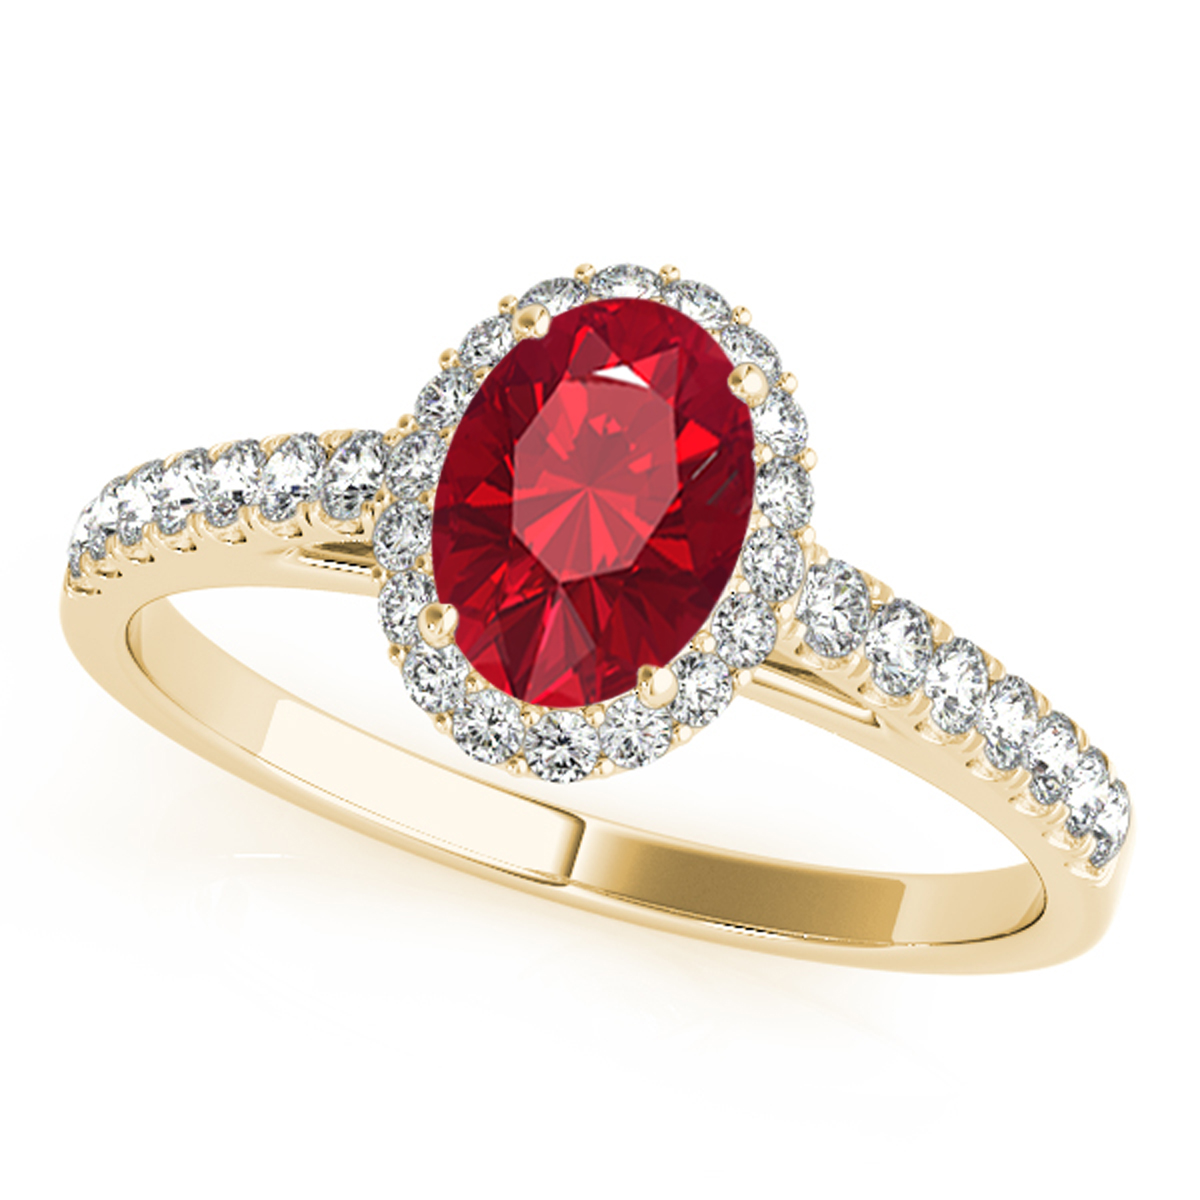 0.70 Ct. Diamond & Oval Shaped Created Ruby Ring -10K Gold